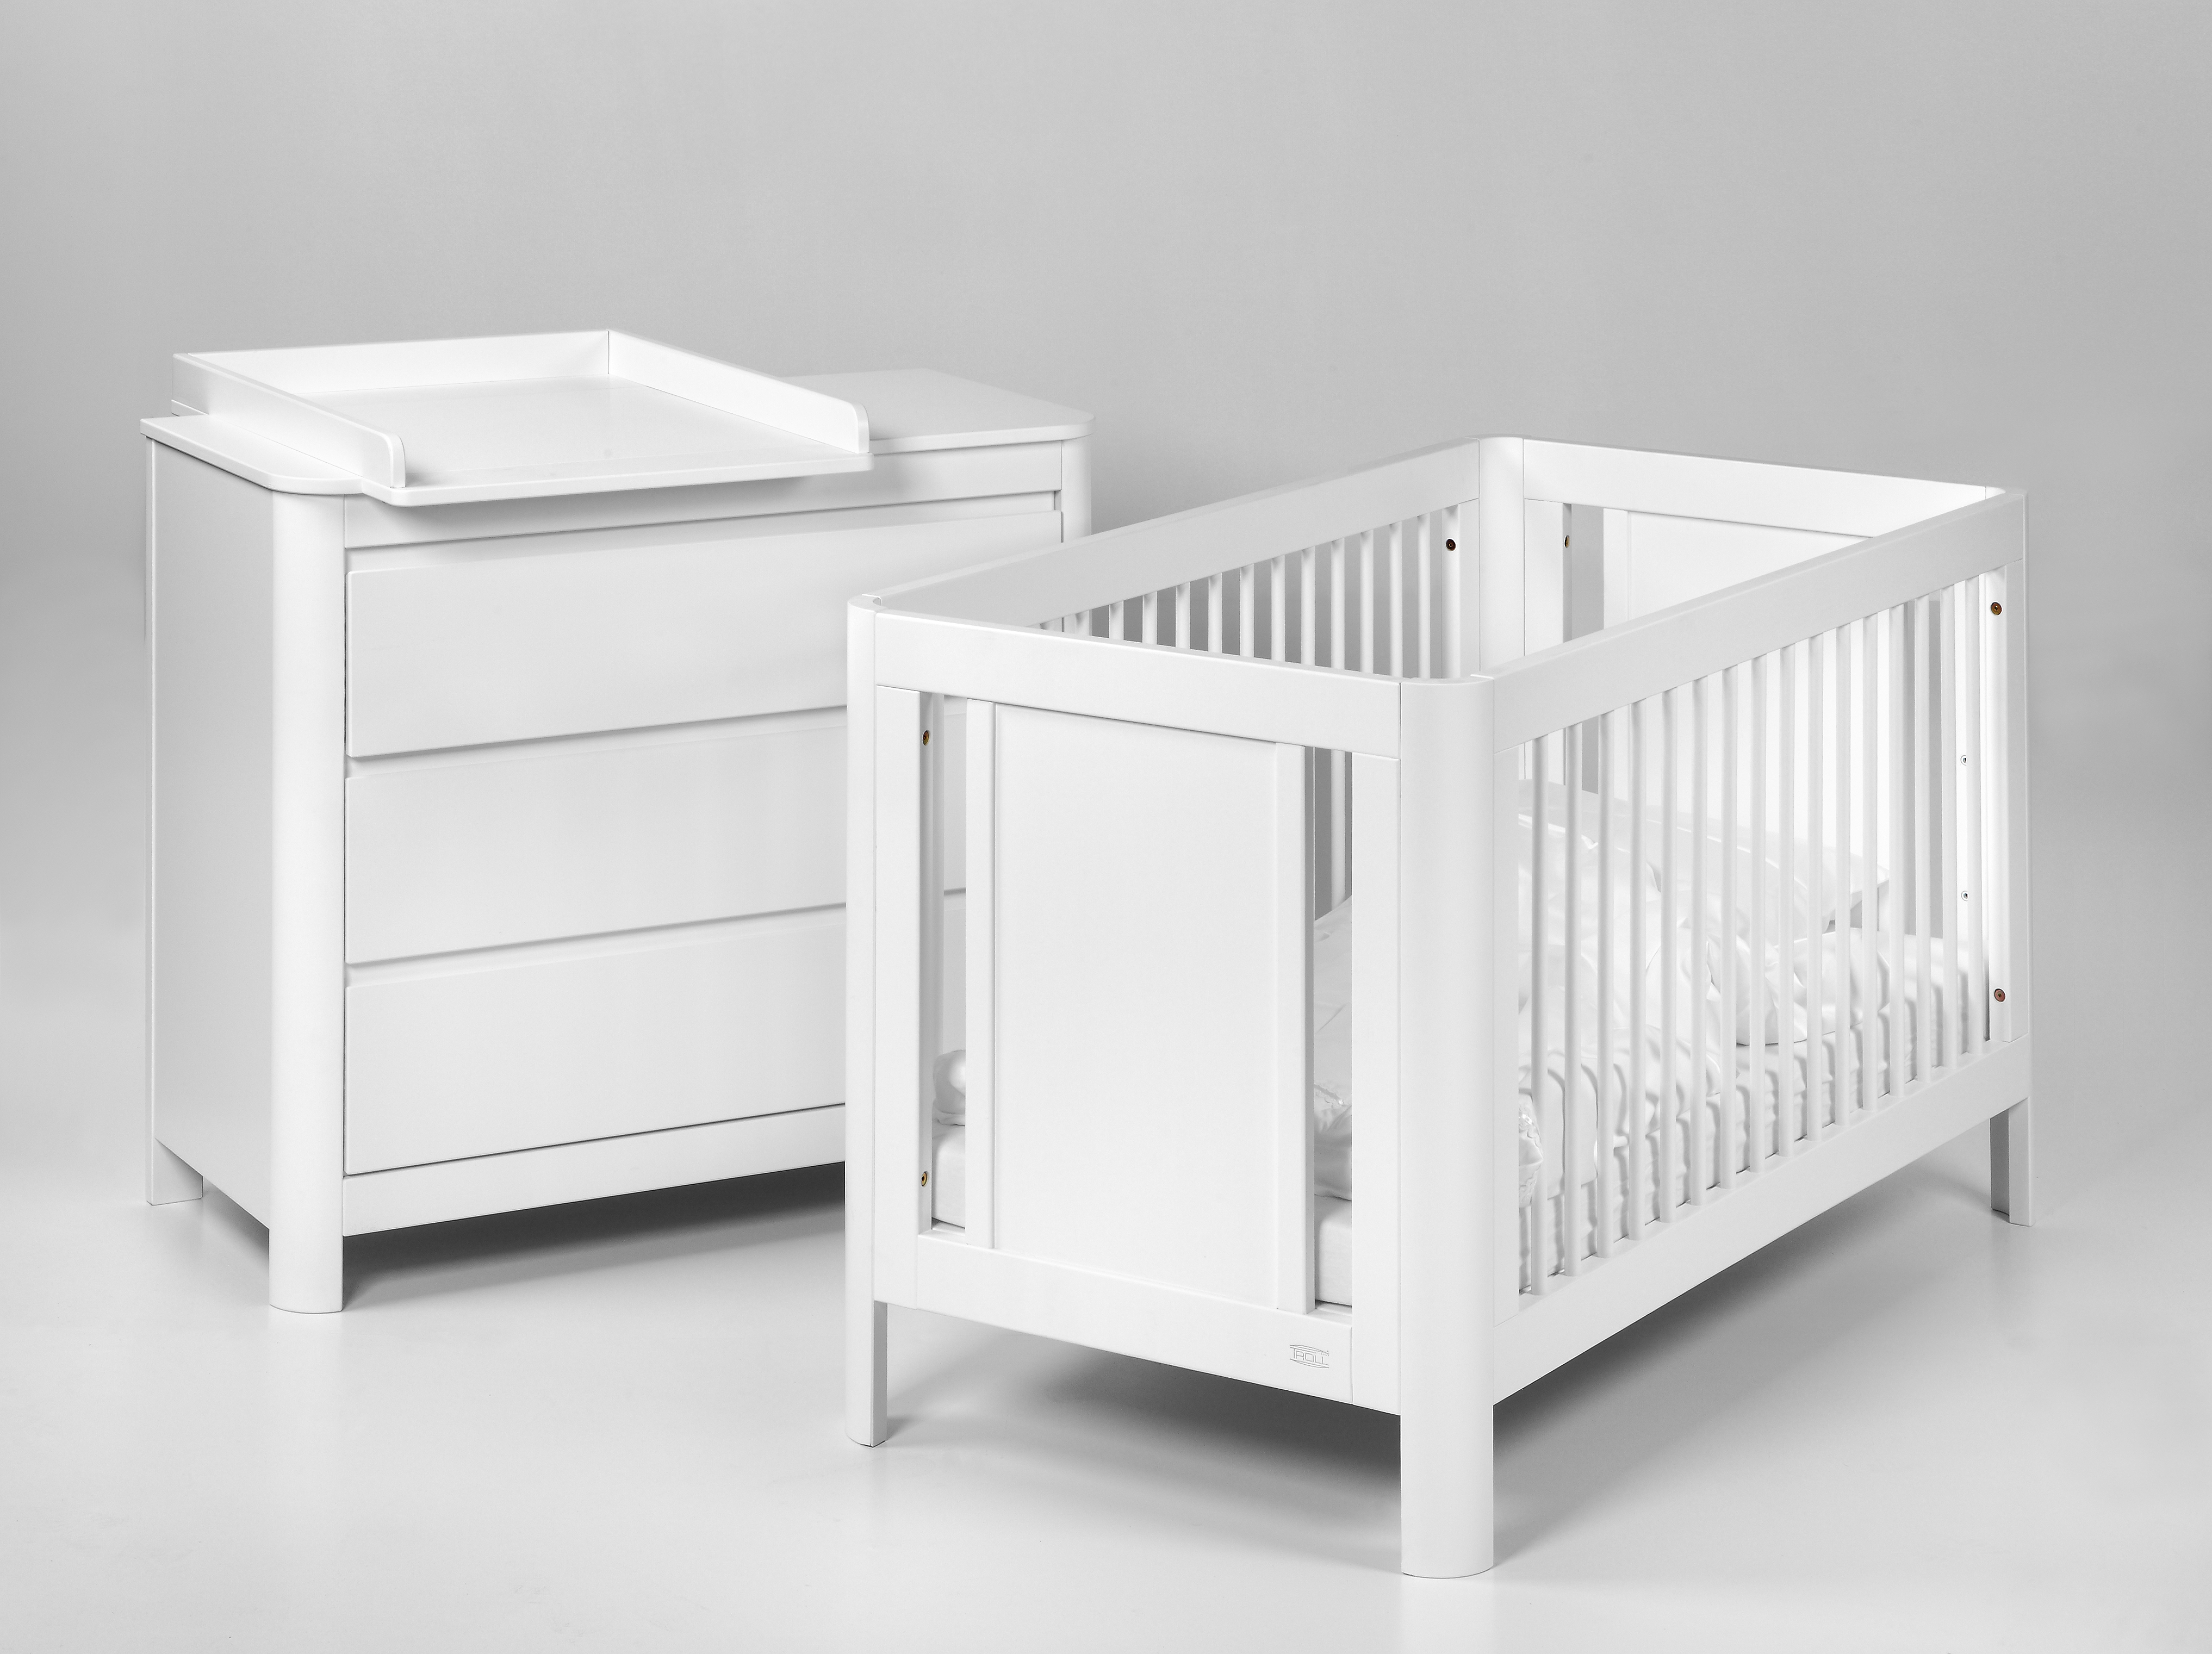 troll sun cot bed instructions